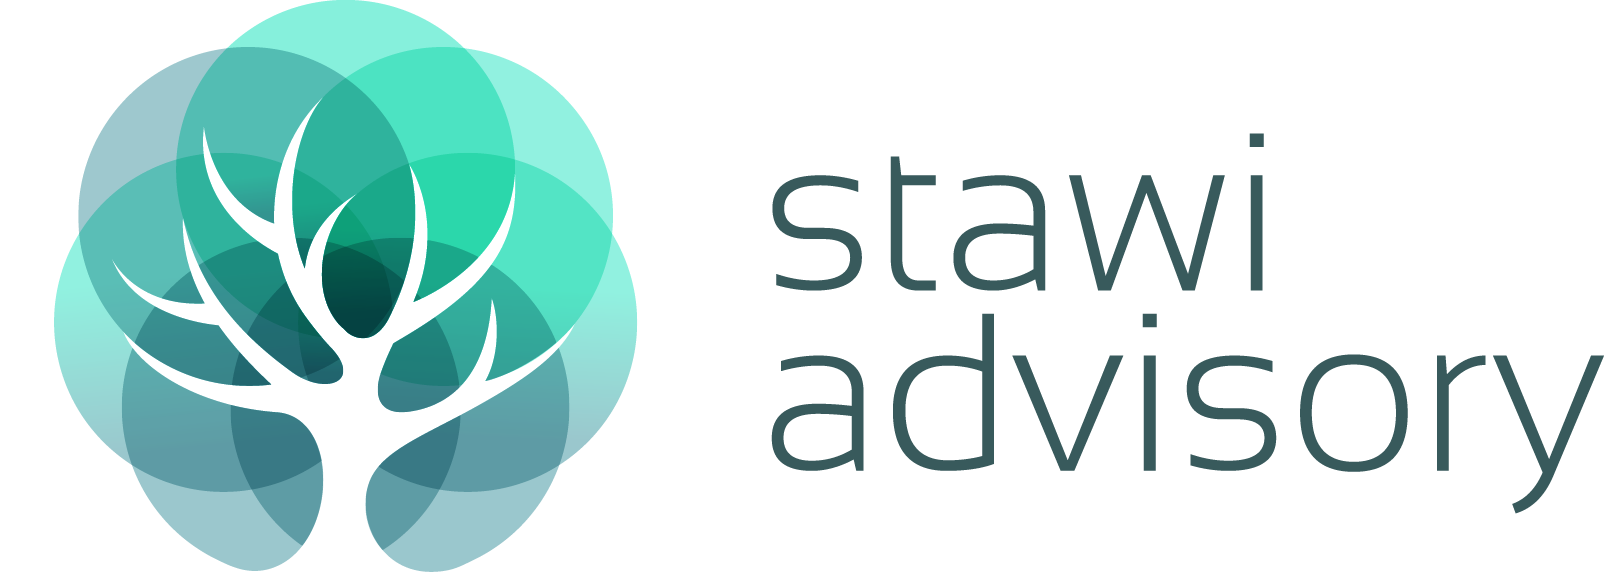 Stawi Advisory Logo PNG(1) (002).PNG